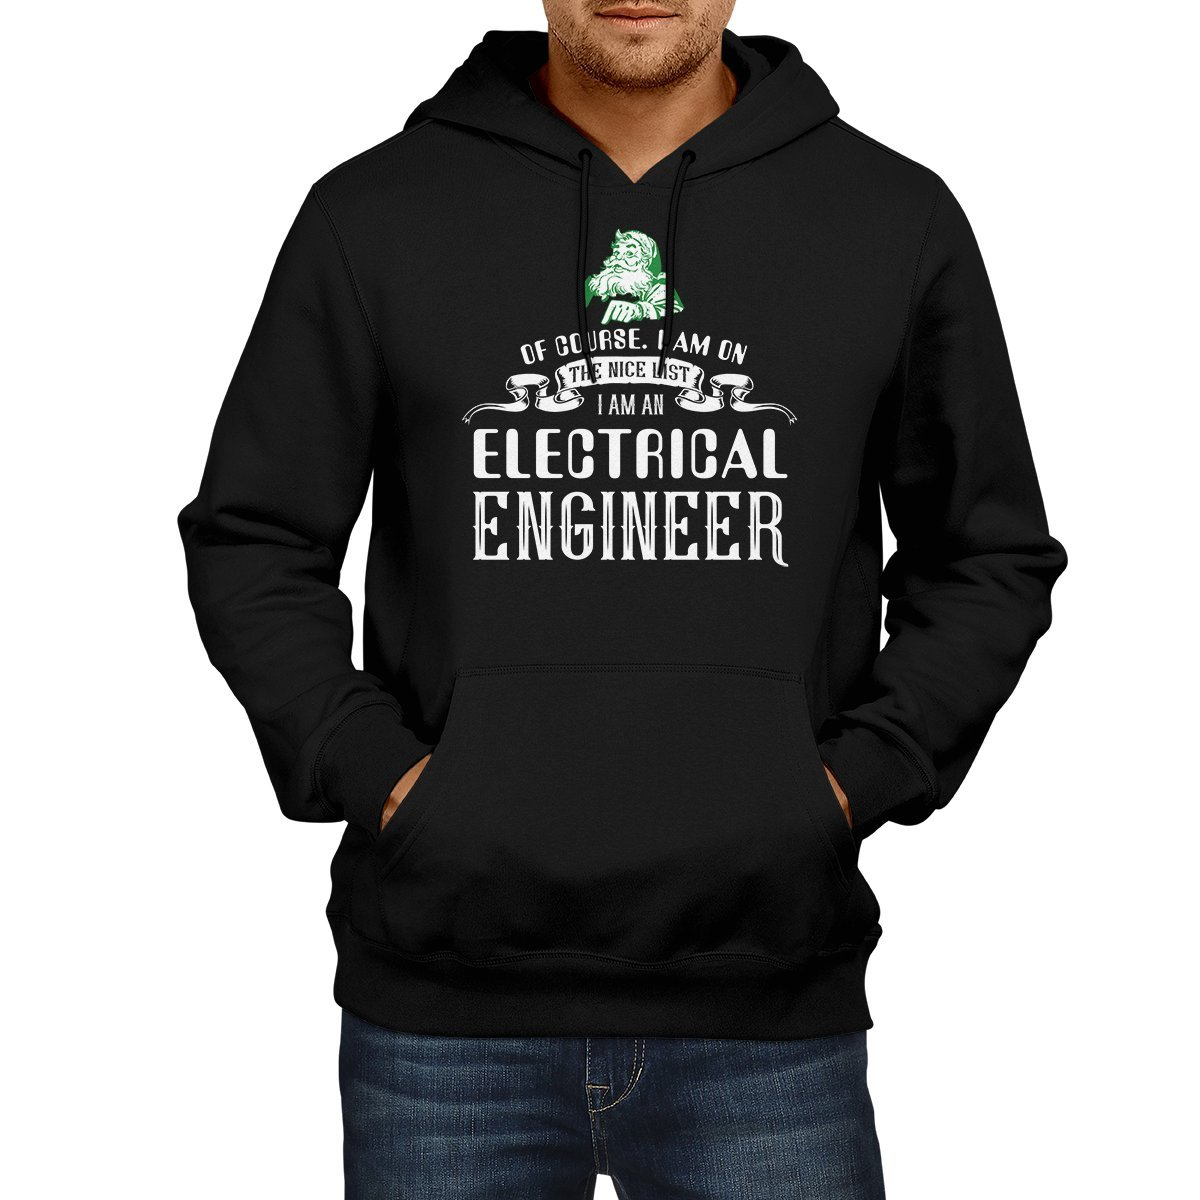 Dolphintee I Am An Electrical Engineer Hoodies Best Gift For Men On Christmas